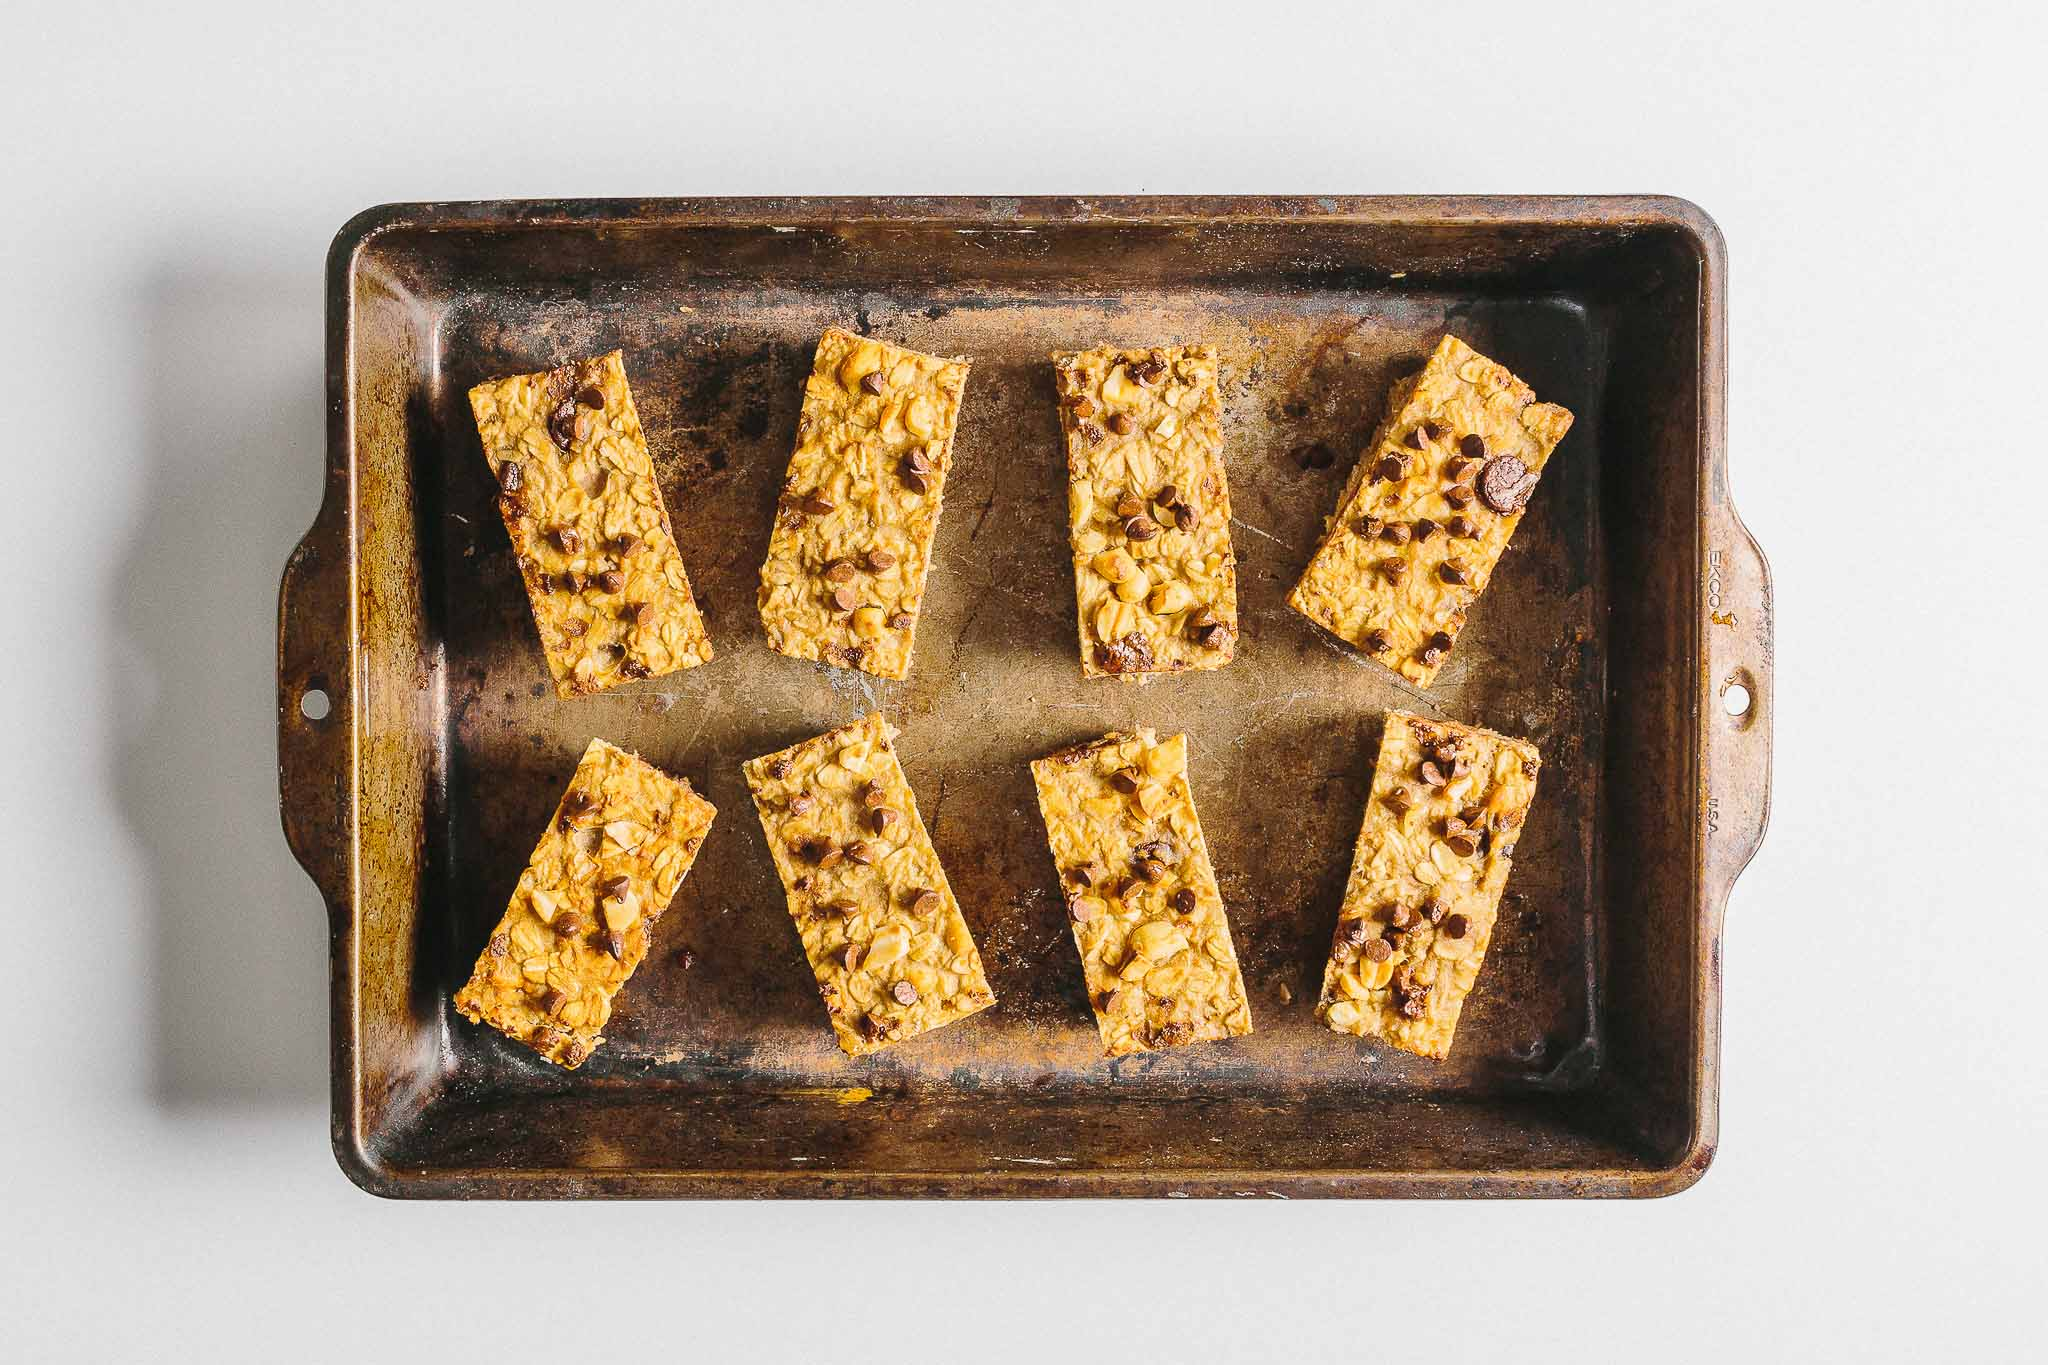 Peanut Butter Banana Granola Bars: Looking for something grab-n-go? This simple snack combines the flavor of banana bread with a bit of crunch.